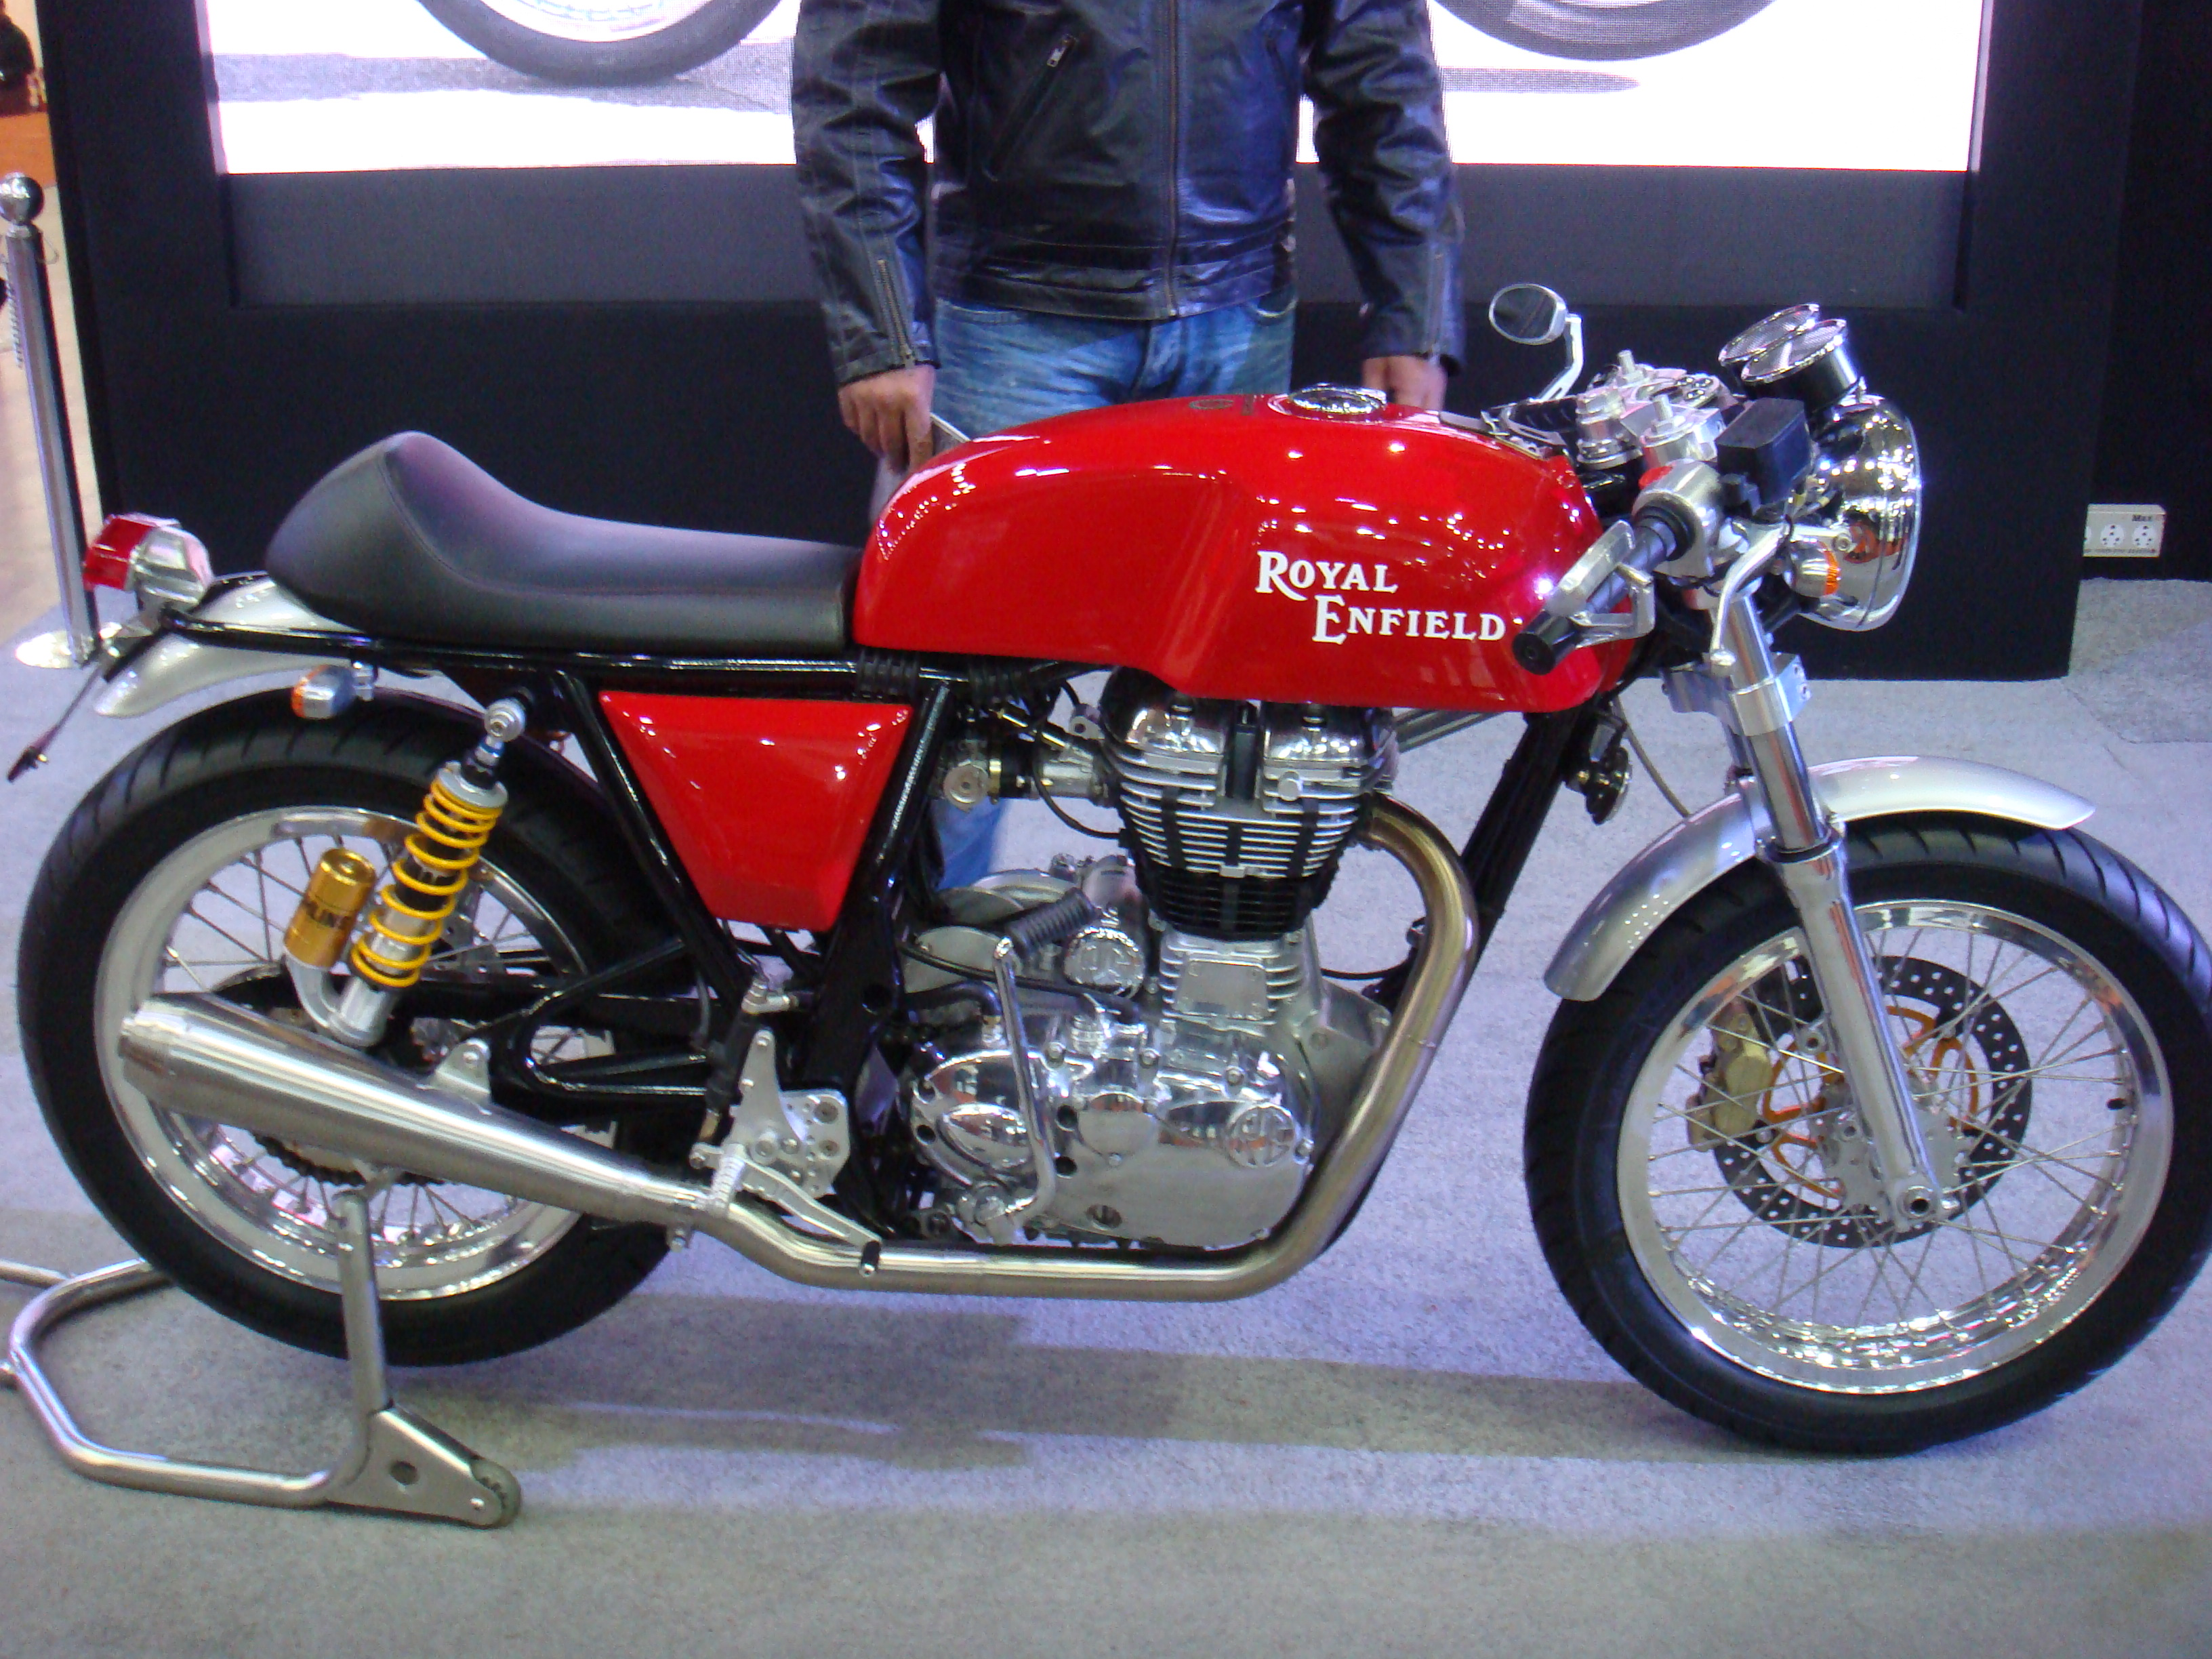 royal enfield cafe racer cars and motorcycles. Black Bedroom Furniture Sets. Home Design Ideas